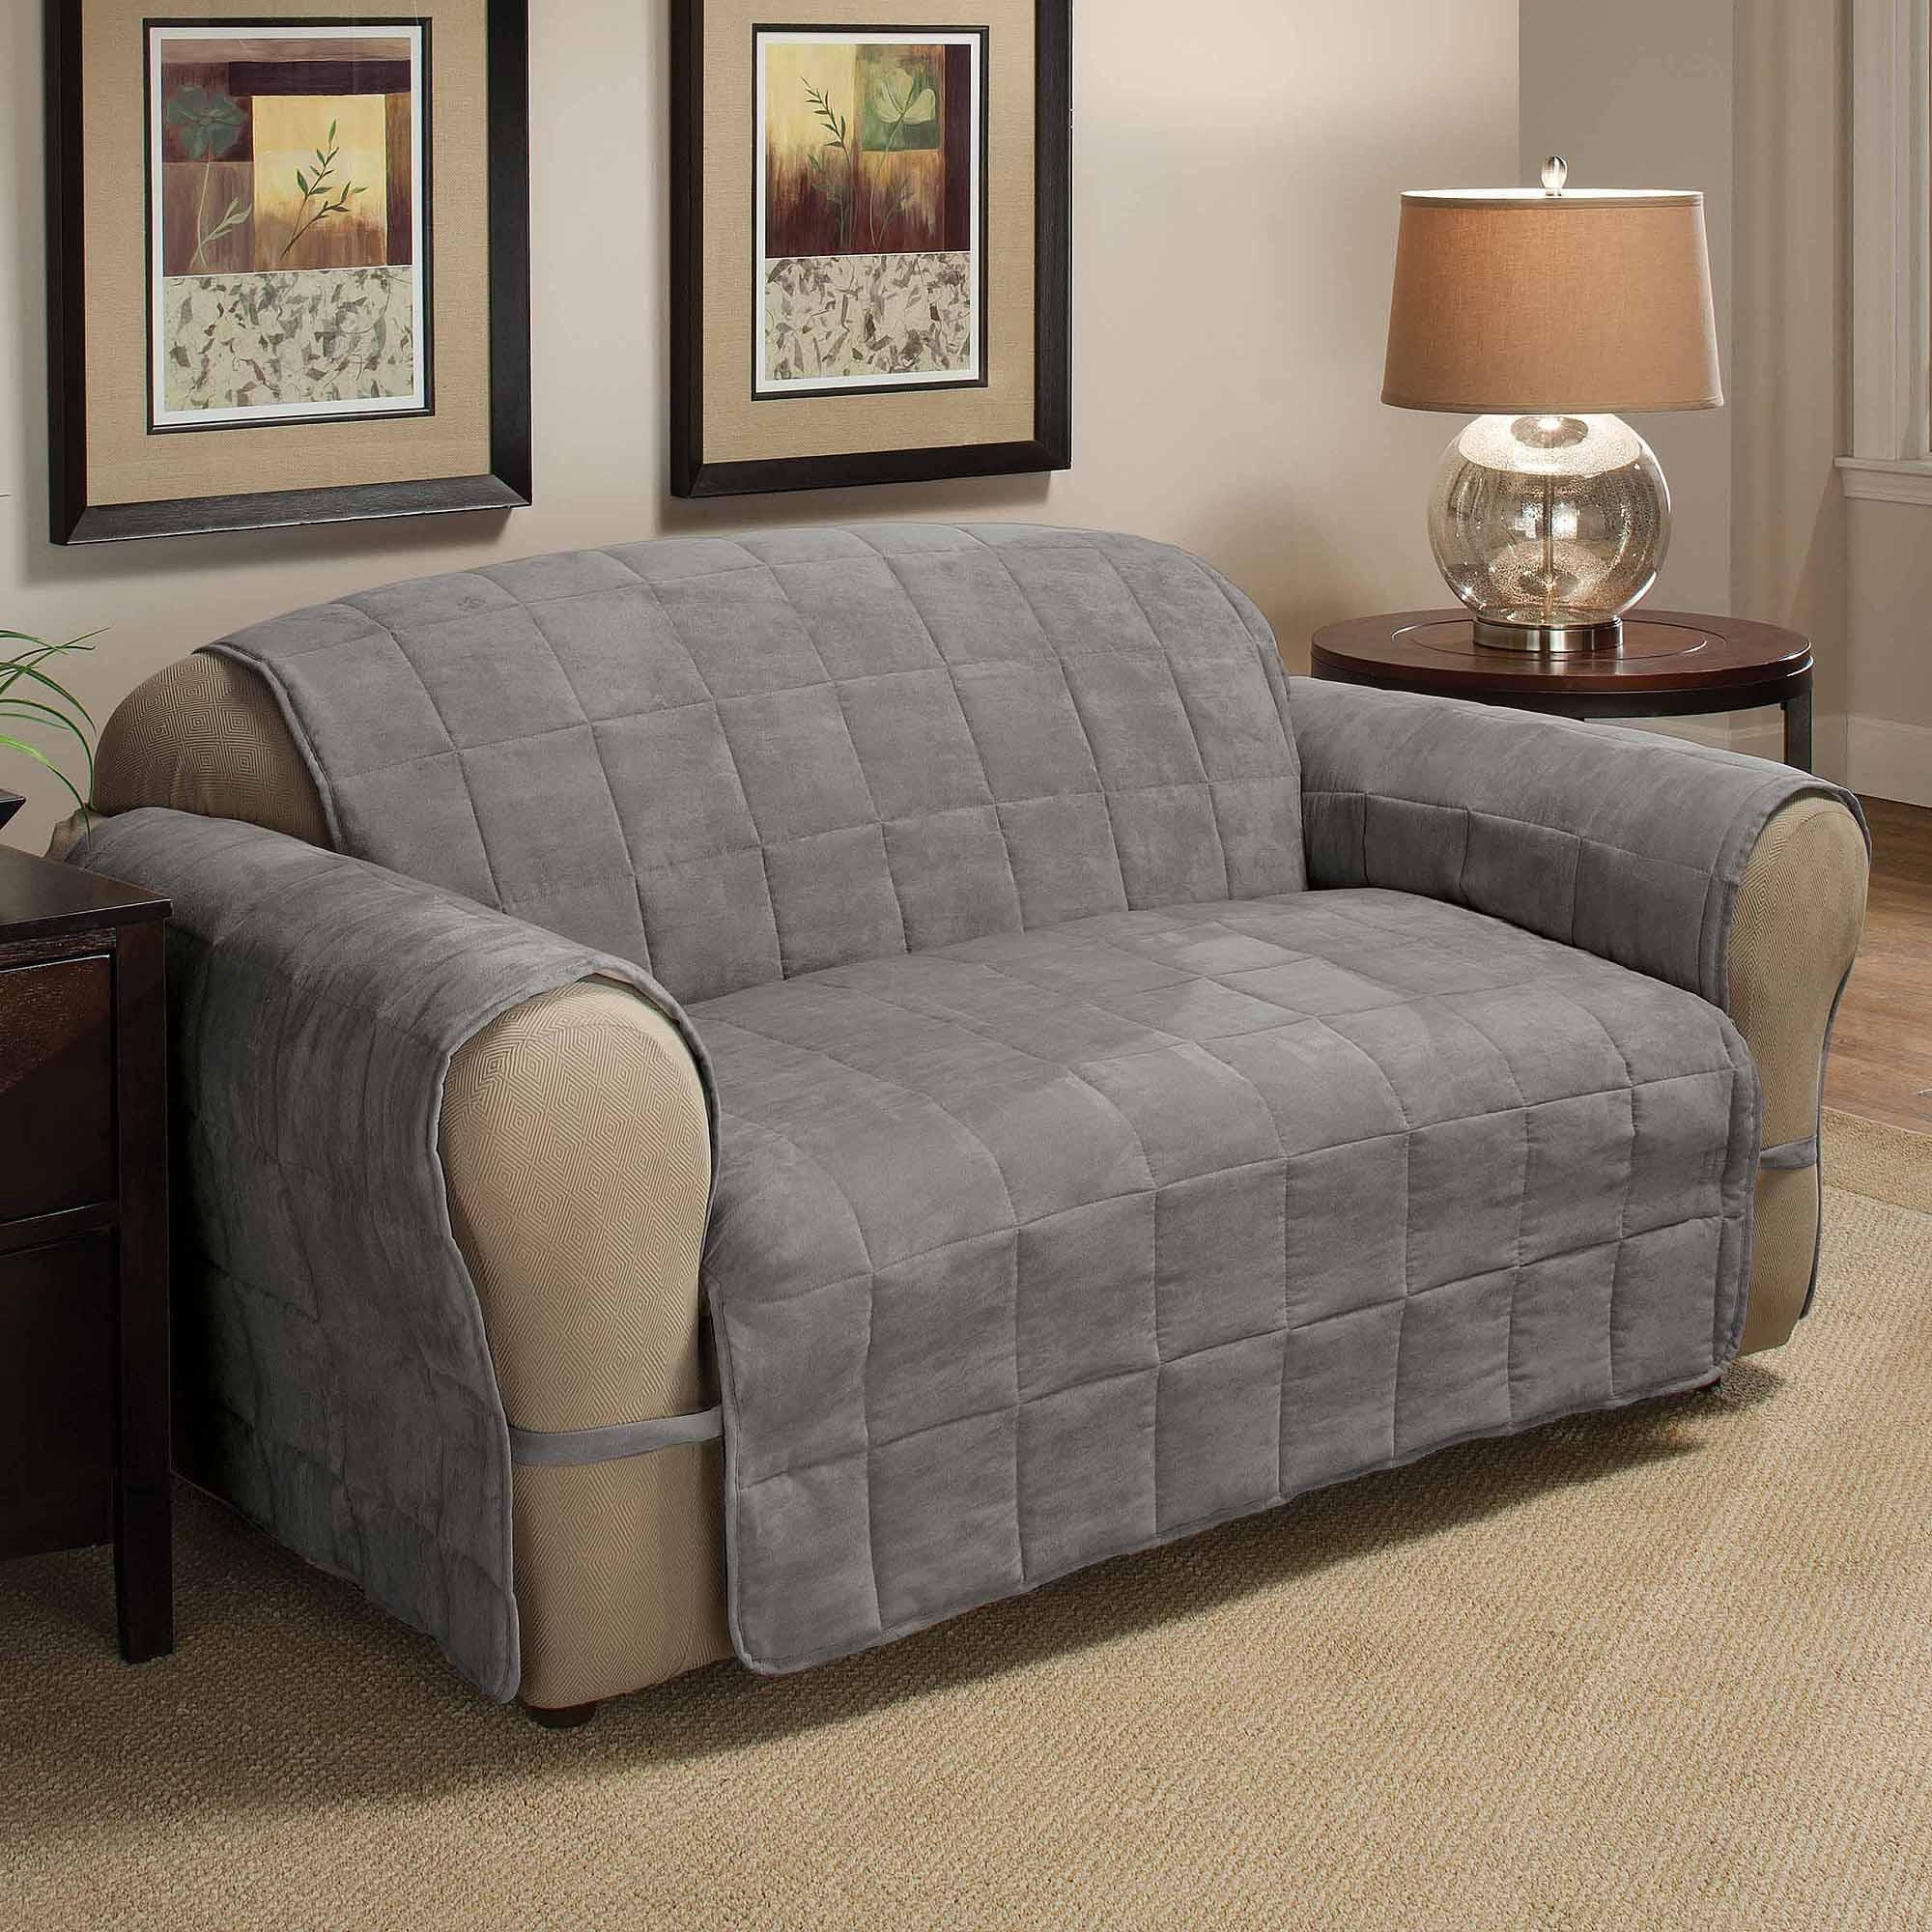 Innovative Textile Solutions Suede Ultimate Furniture Protectors For Suede Slipcovers For Sofas (View 7 of 20)